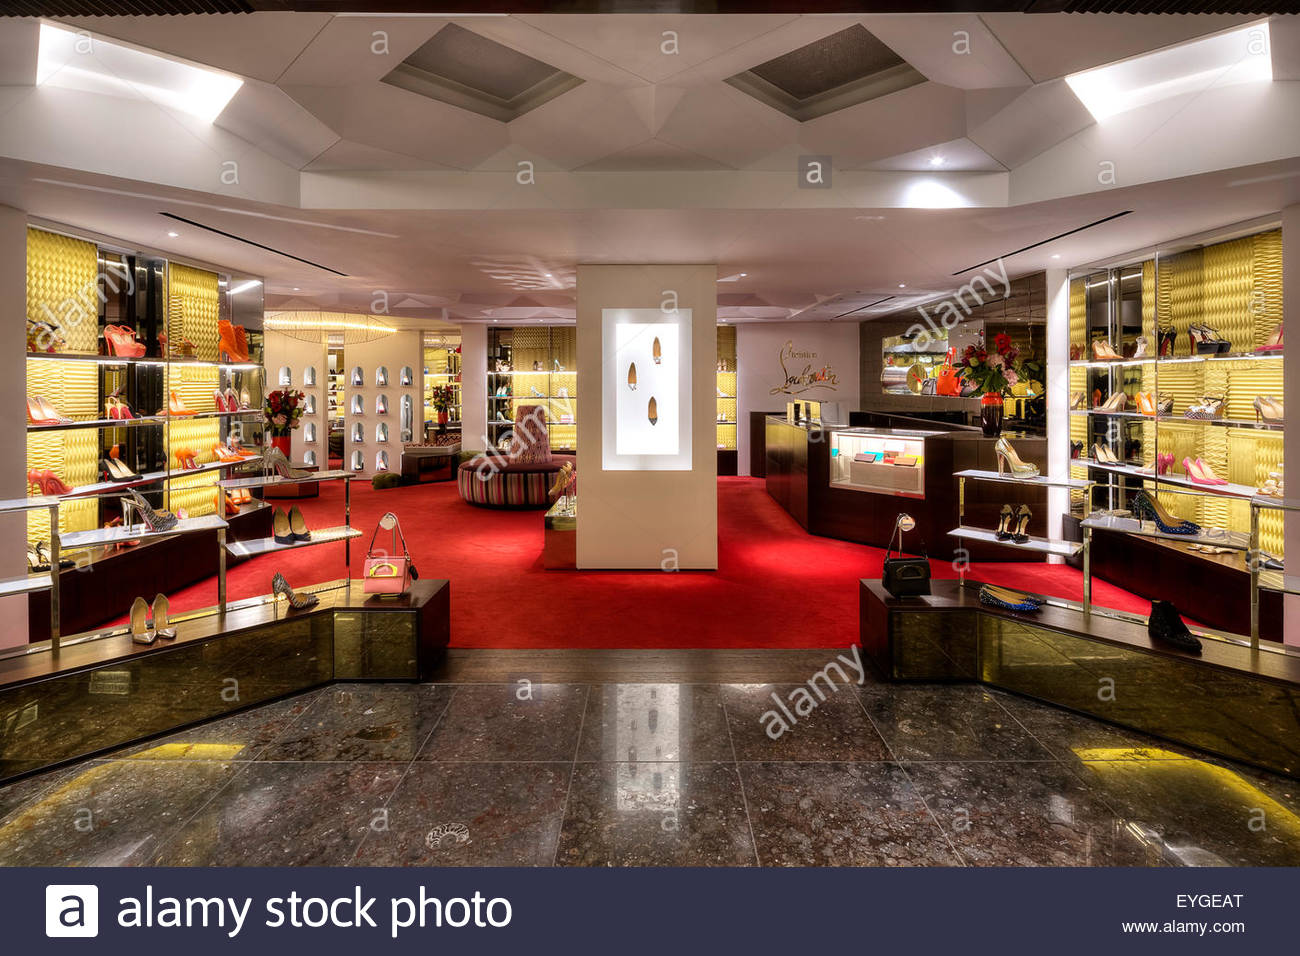 Awesome Shop Interior Wide Angle. Christian Louboutin   Harrods, London, United  Kingdom. Architect